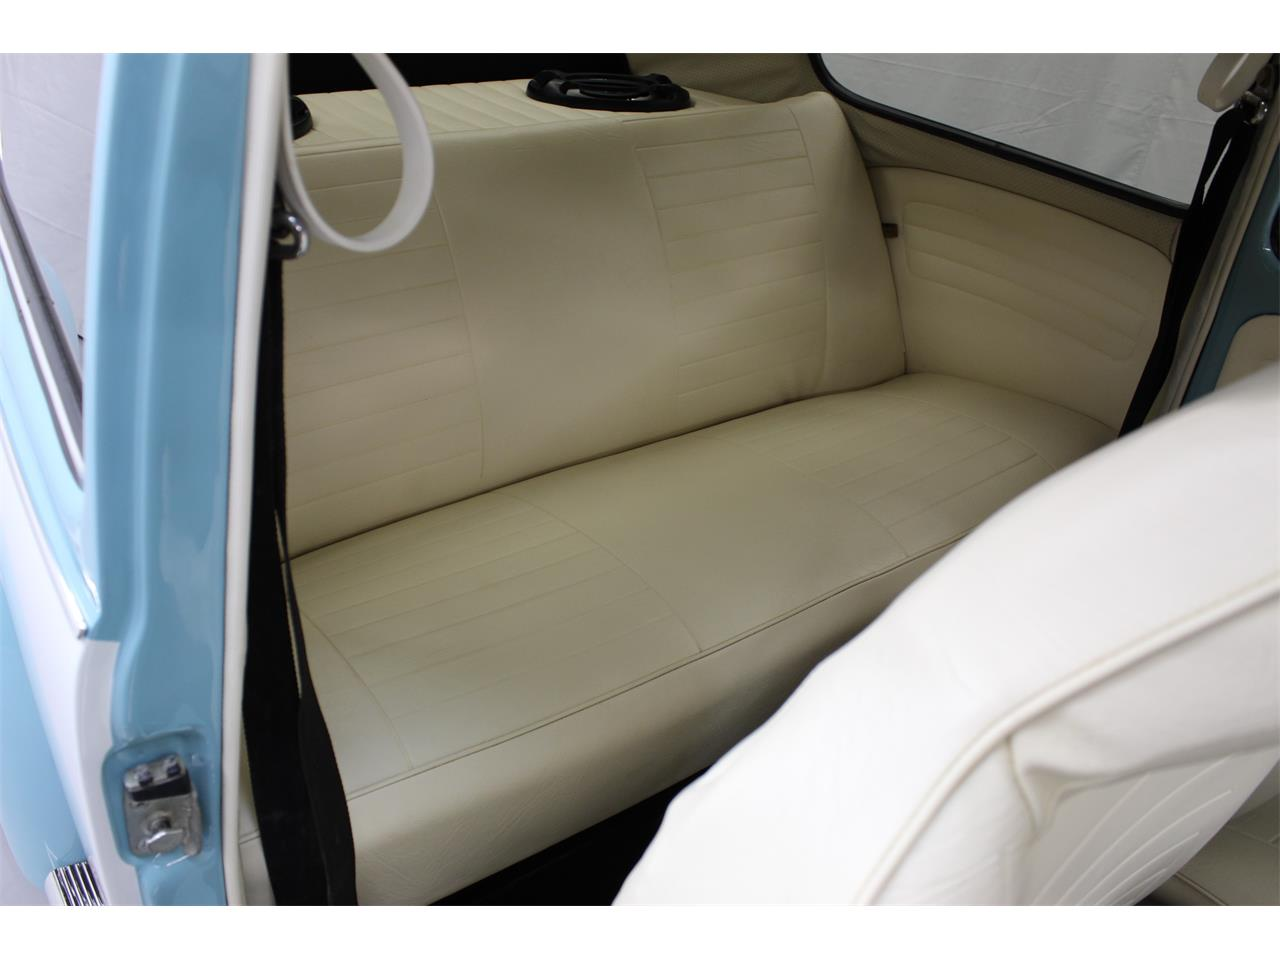 1974 Volkswagen Beetle for sale in Christiansburg, VA – photo 22